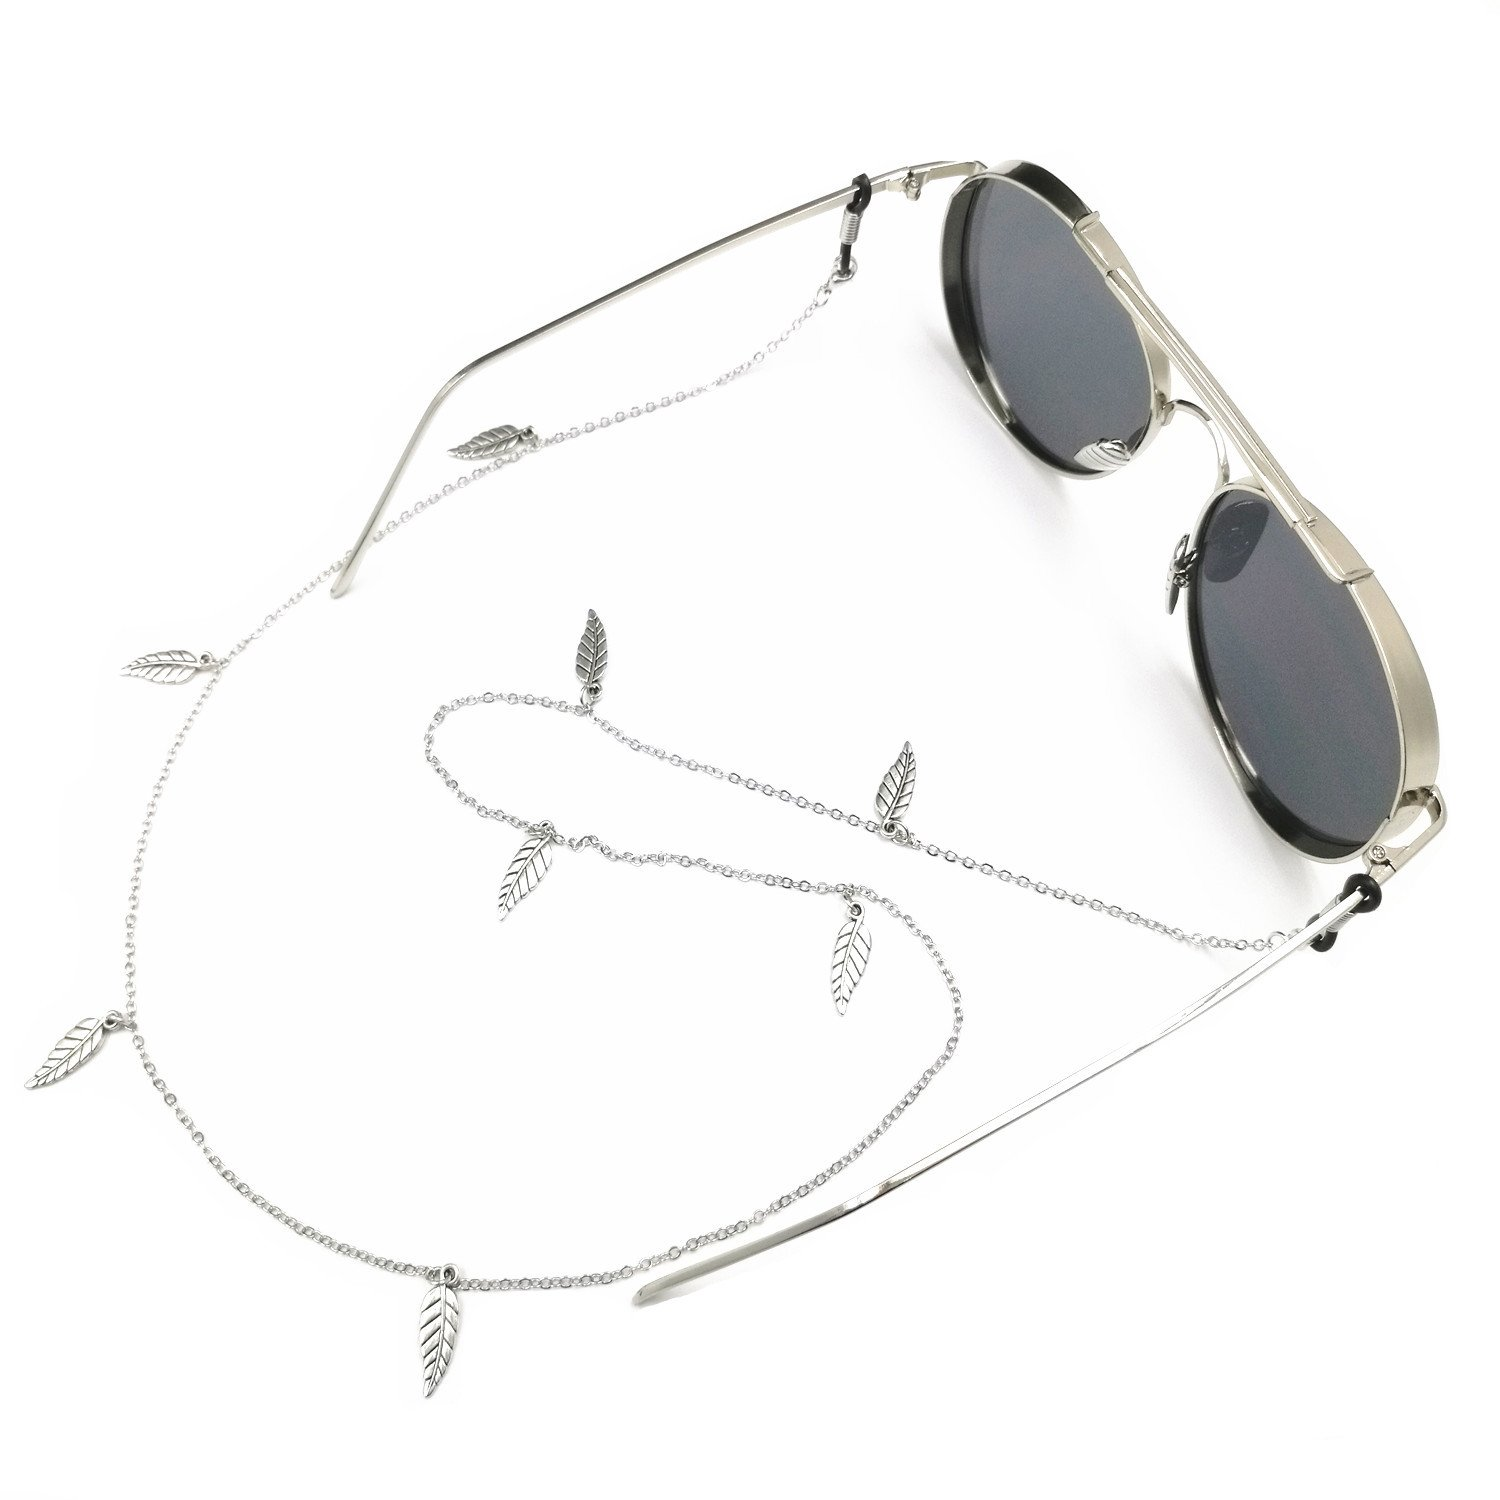 Kalevel Eyeglass Strap Holder Silver Glasses String Holders for Women Girls 4332660750